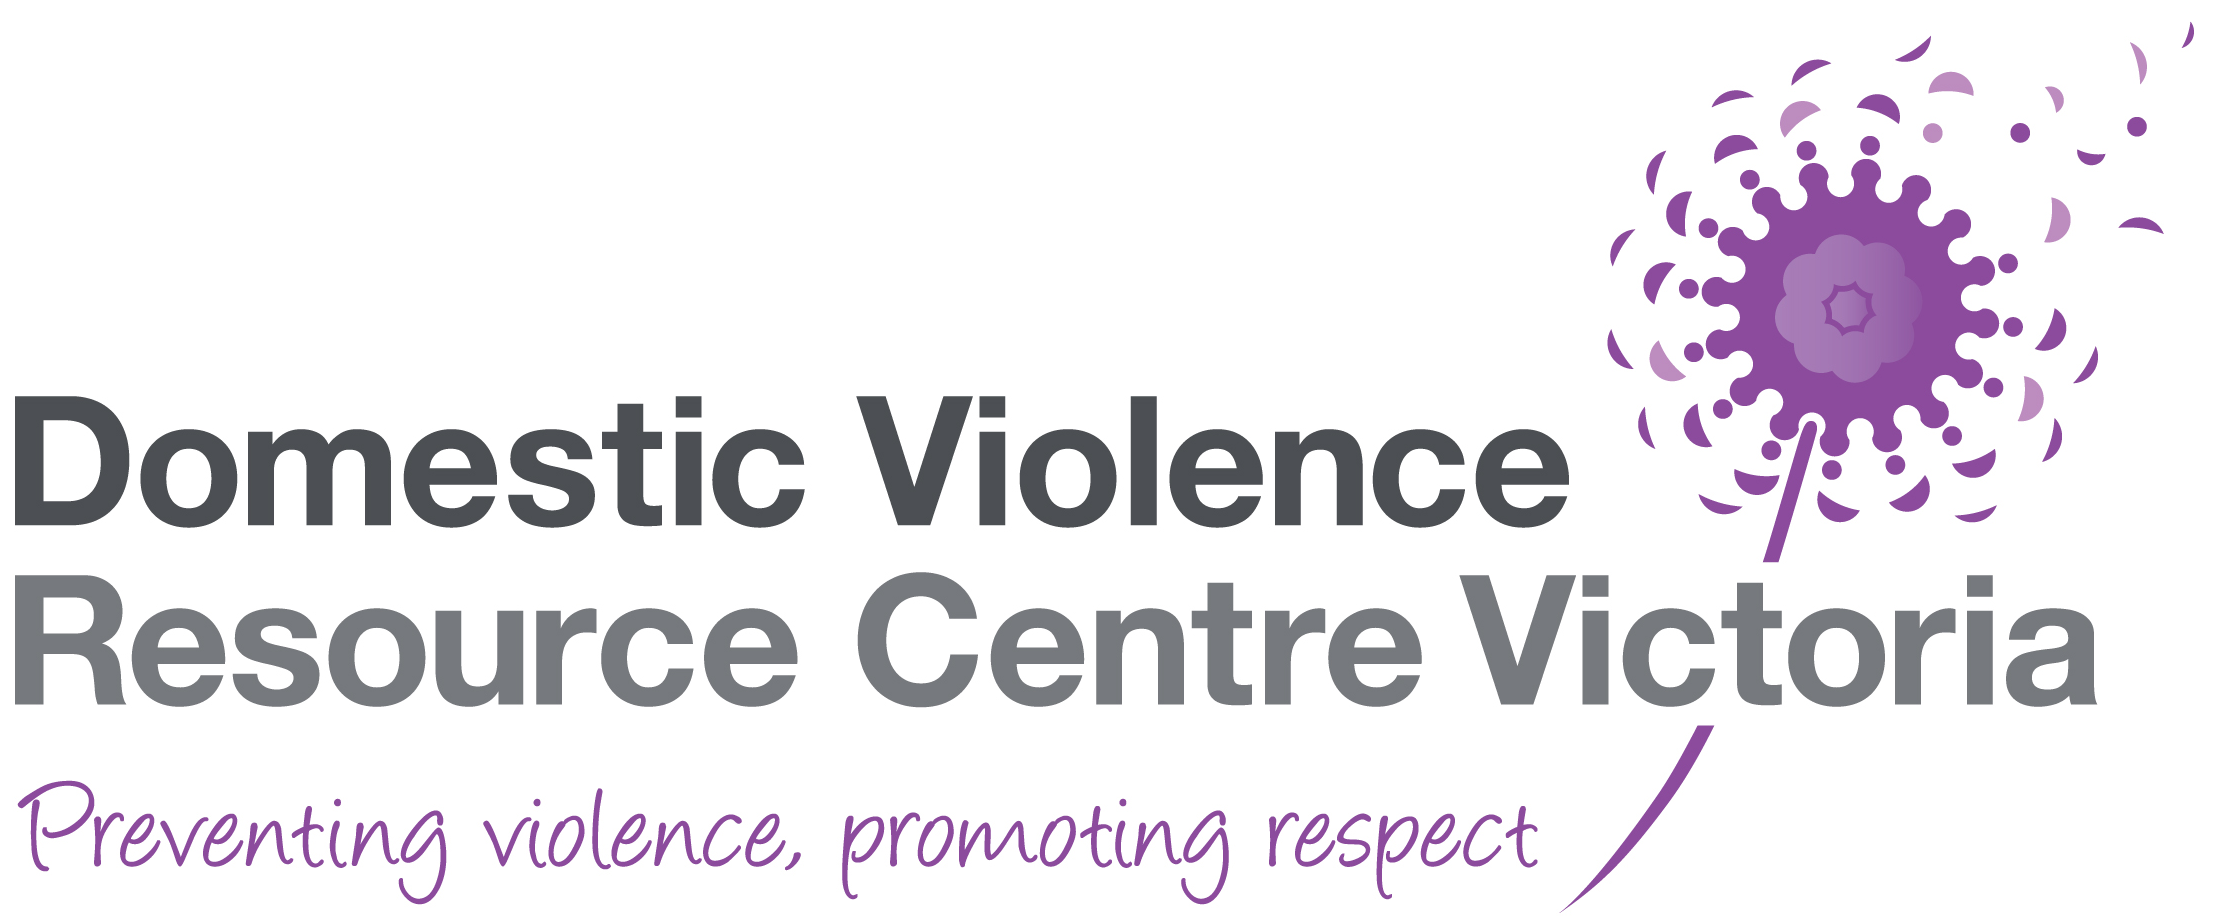 Domestic violence resource centre Victoria logo, Preventing violence, promoting respect